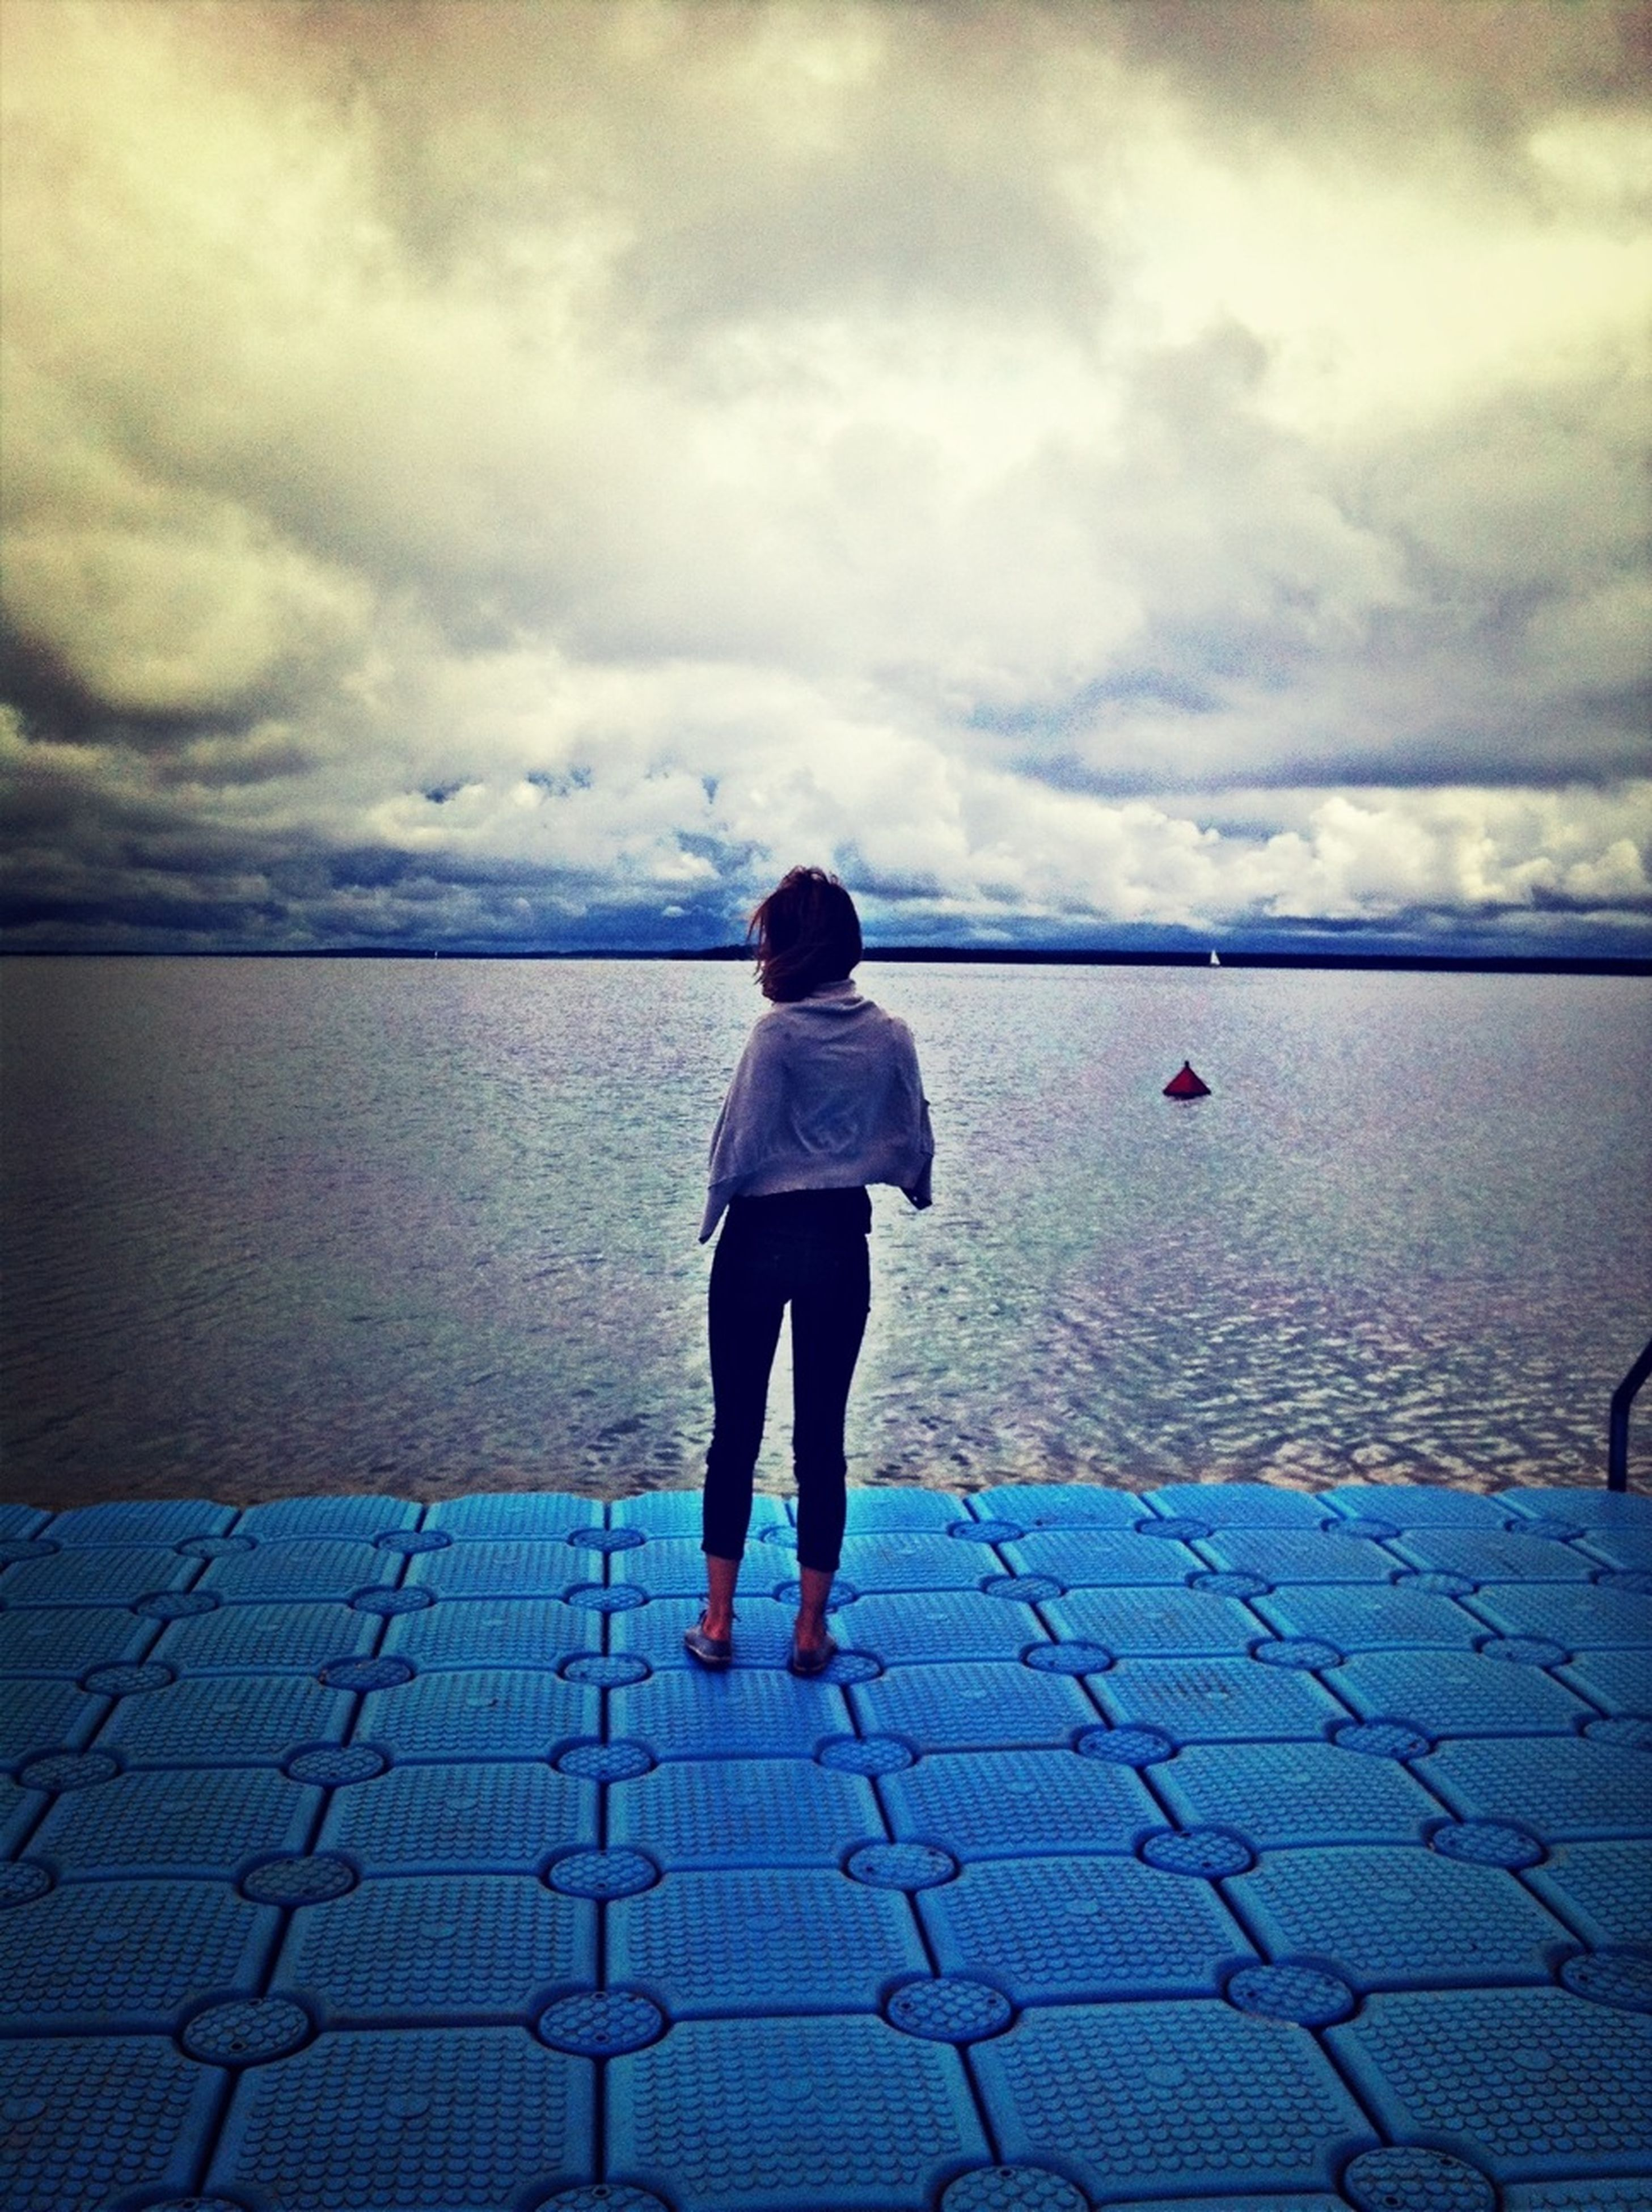 water, sky, full length, rear view, cloud - sky, standing, lifestyles, leisure activity, casual clothing, sea, cloudy, cloud, tranquility, nature, tranquil scene, pier, walking, day